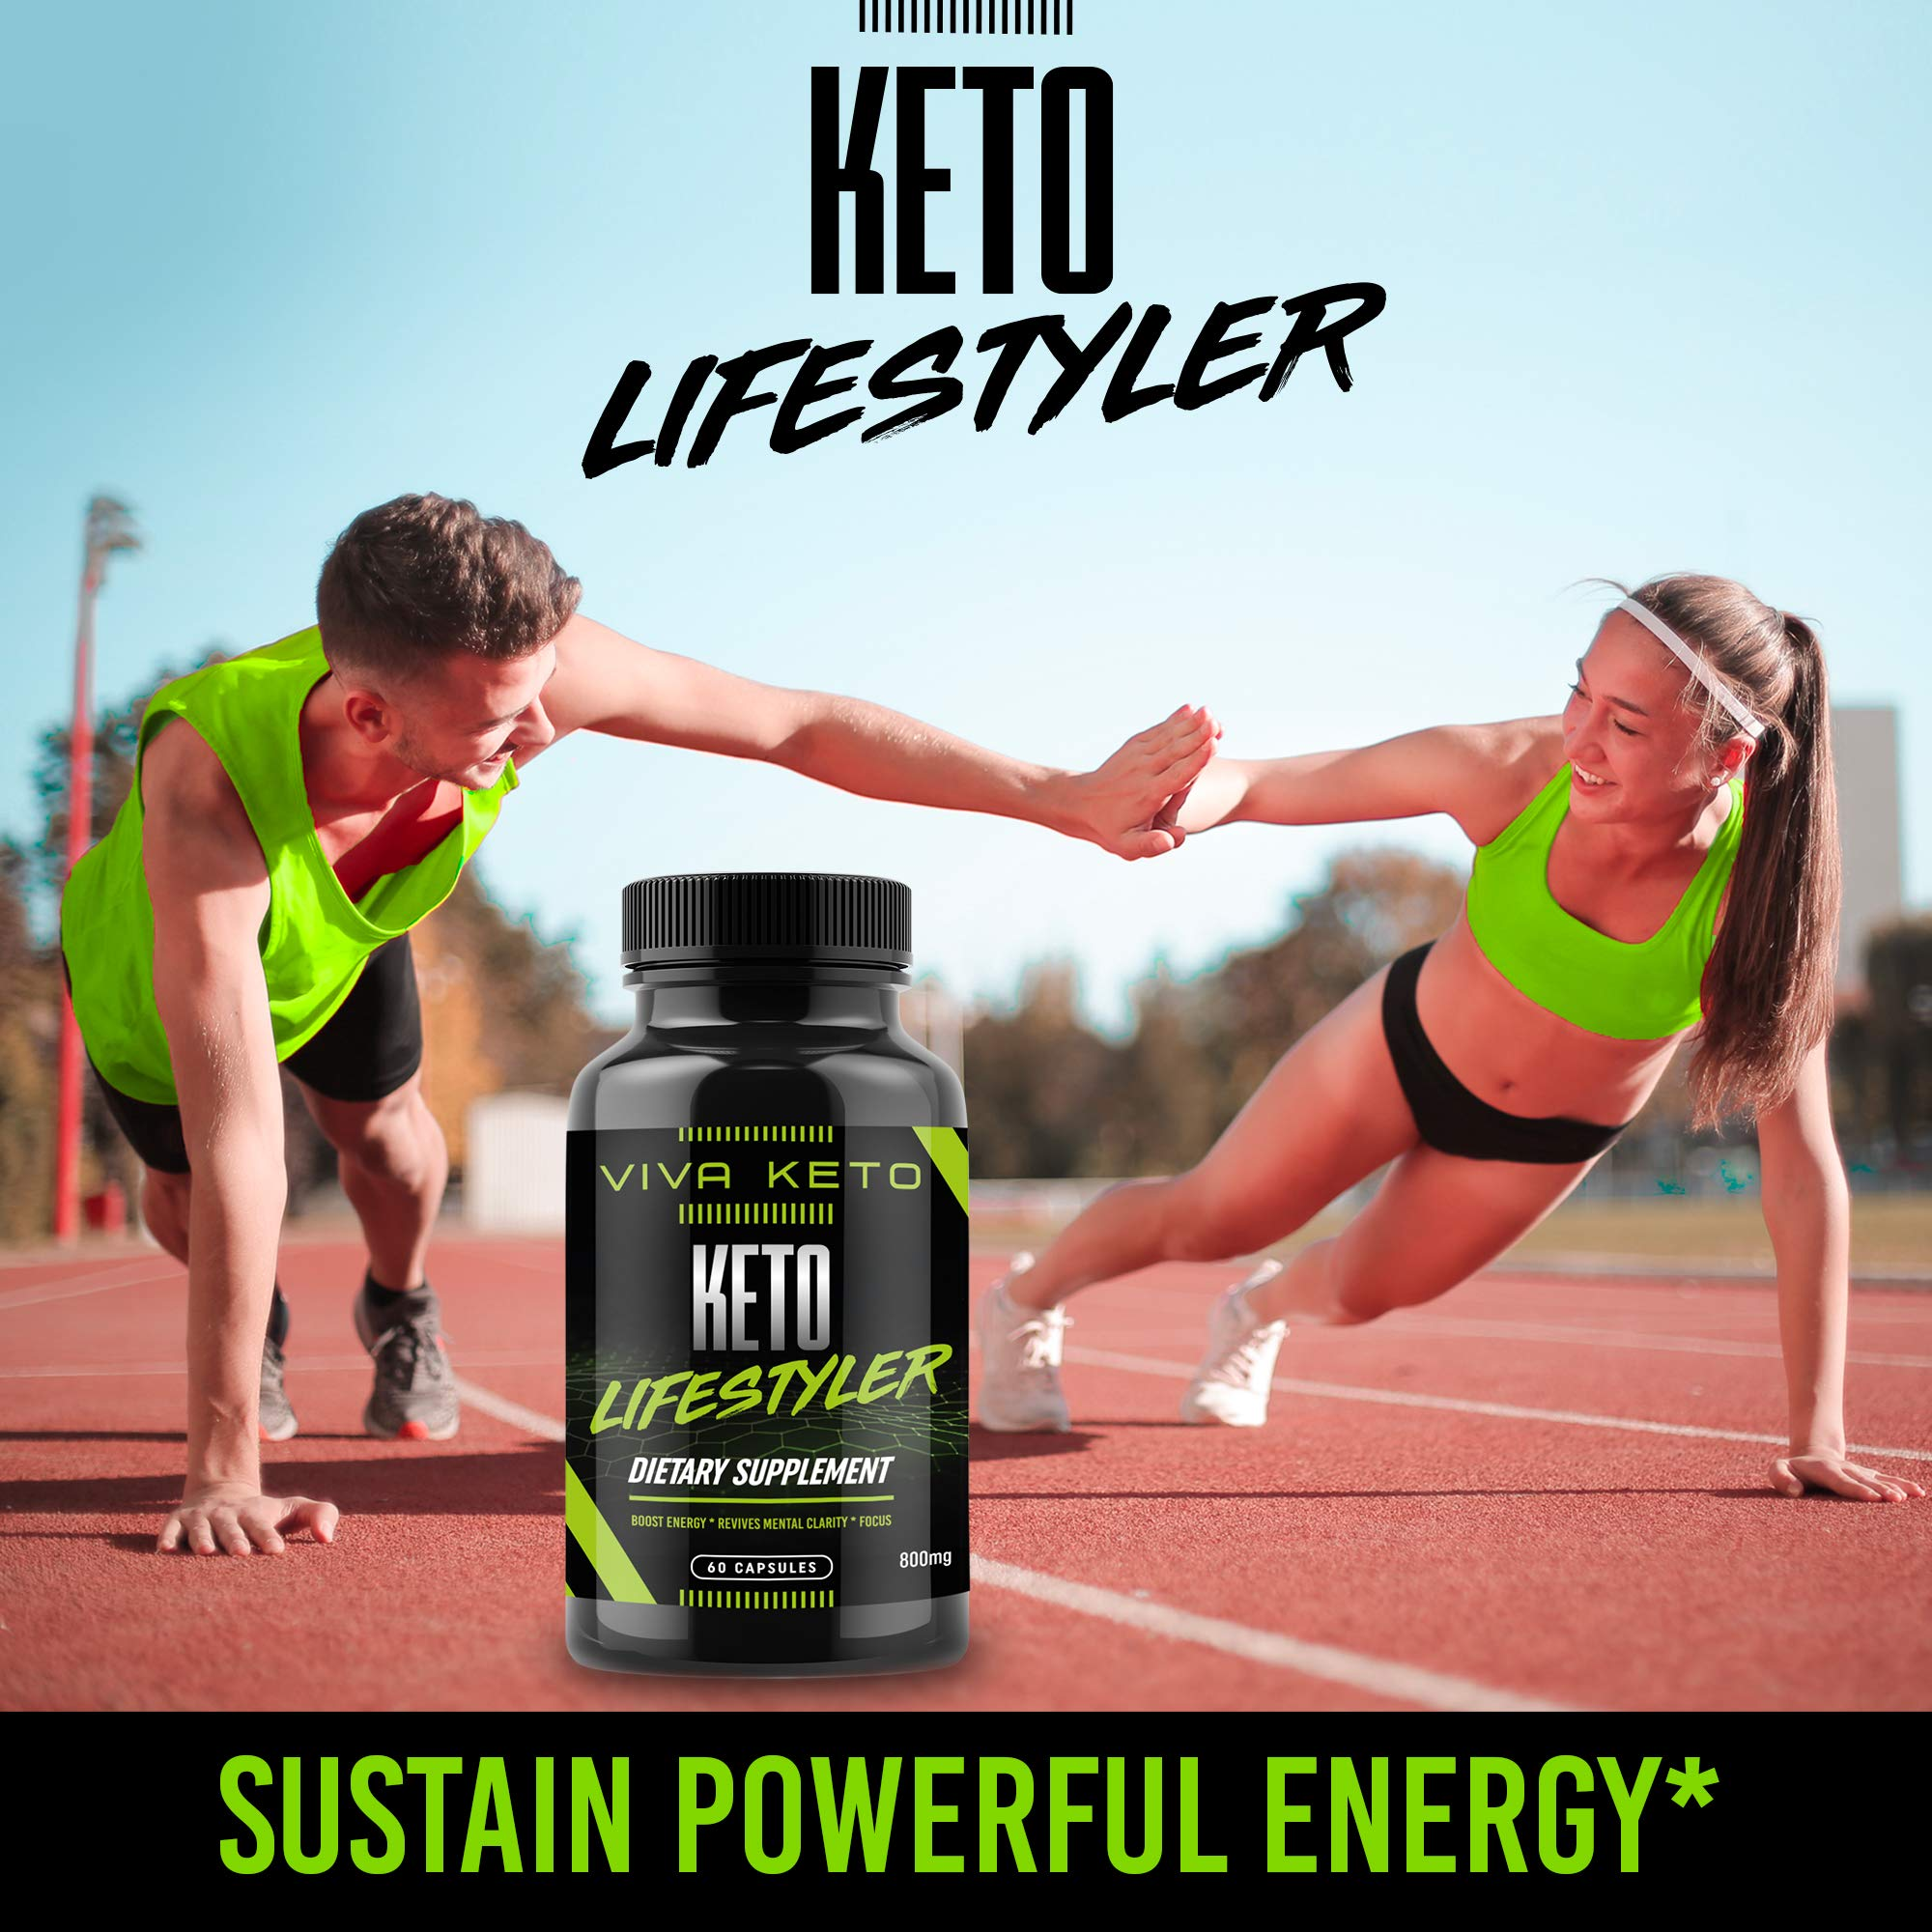 Keto Diet Pills Appetite Suppressant Supplement - Exogenous Ketones Ketogenic Diet Pills - Boosts Metabolism and Supplies Energy- 60 Capsules by Keto Lifestyler (Image #4)